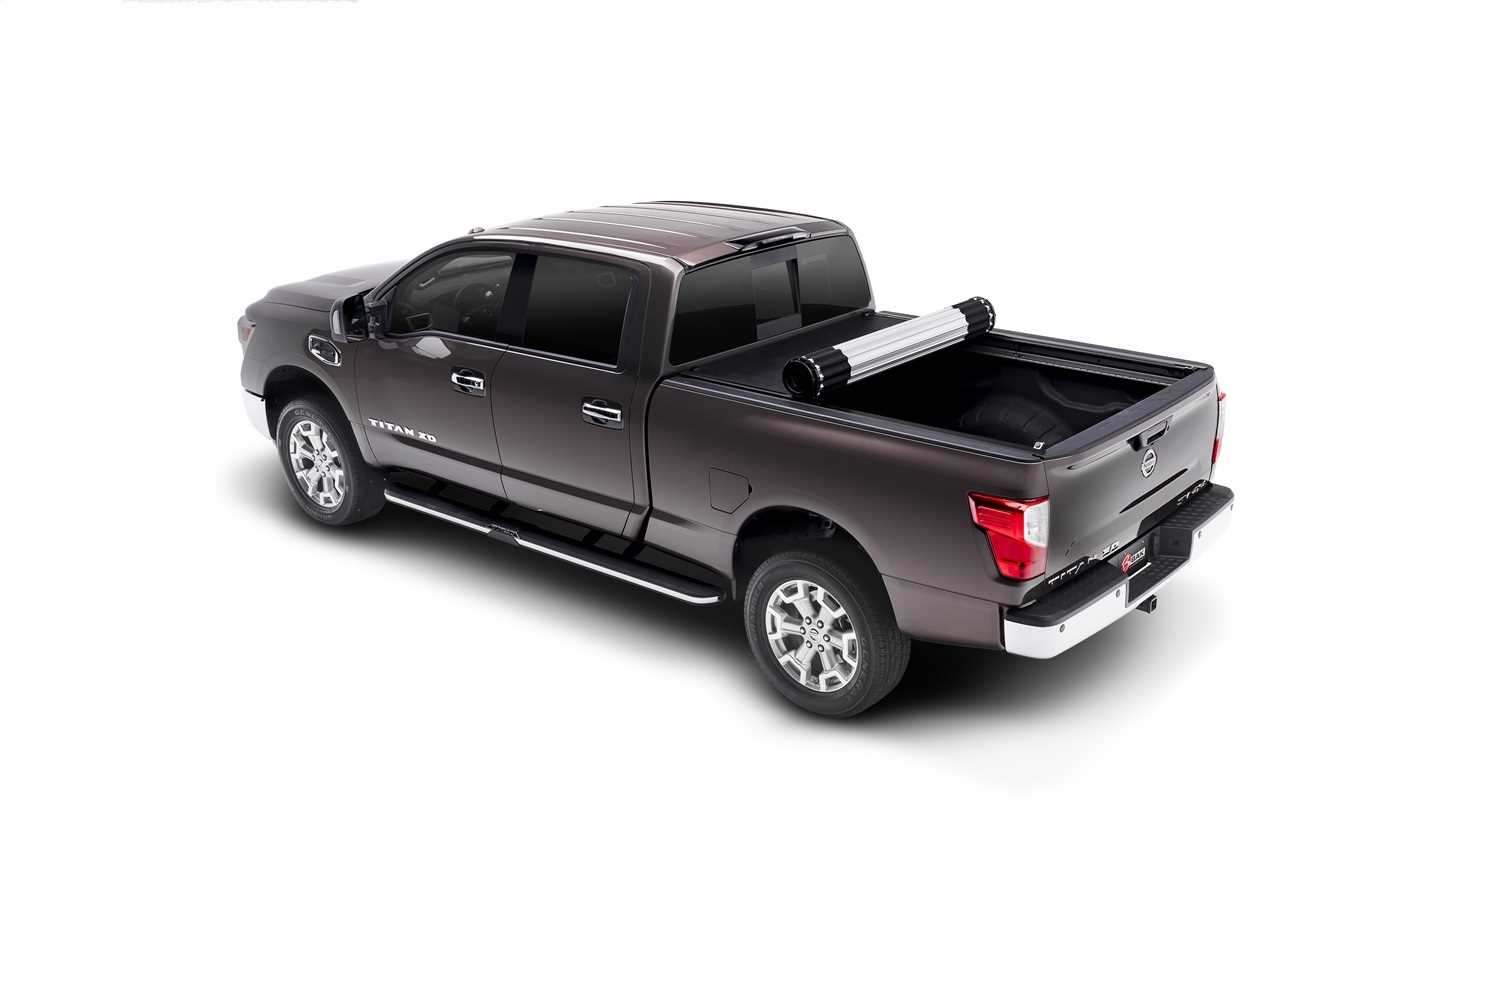 39507 Bak Industries Revolver X2 Hard Rolling Truck Bed Cover